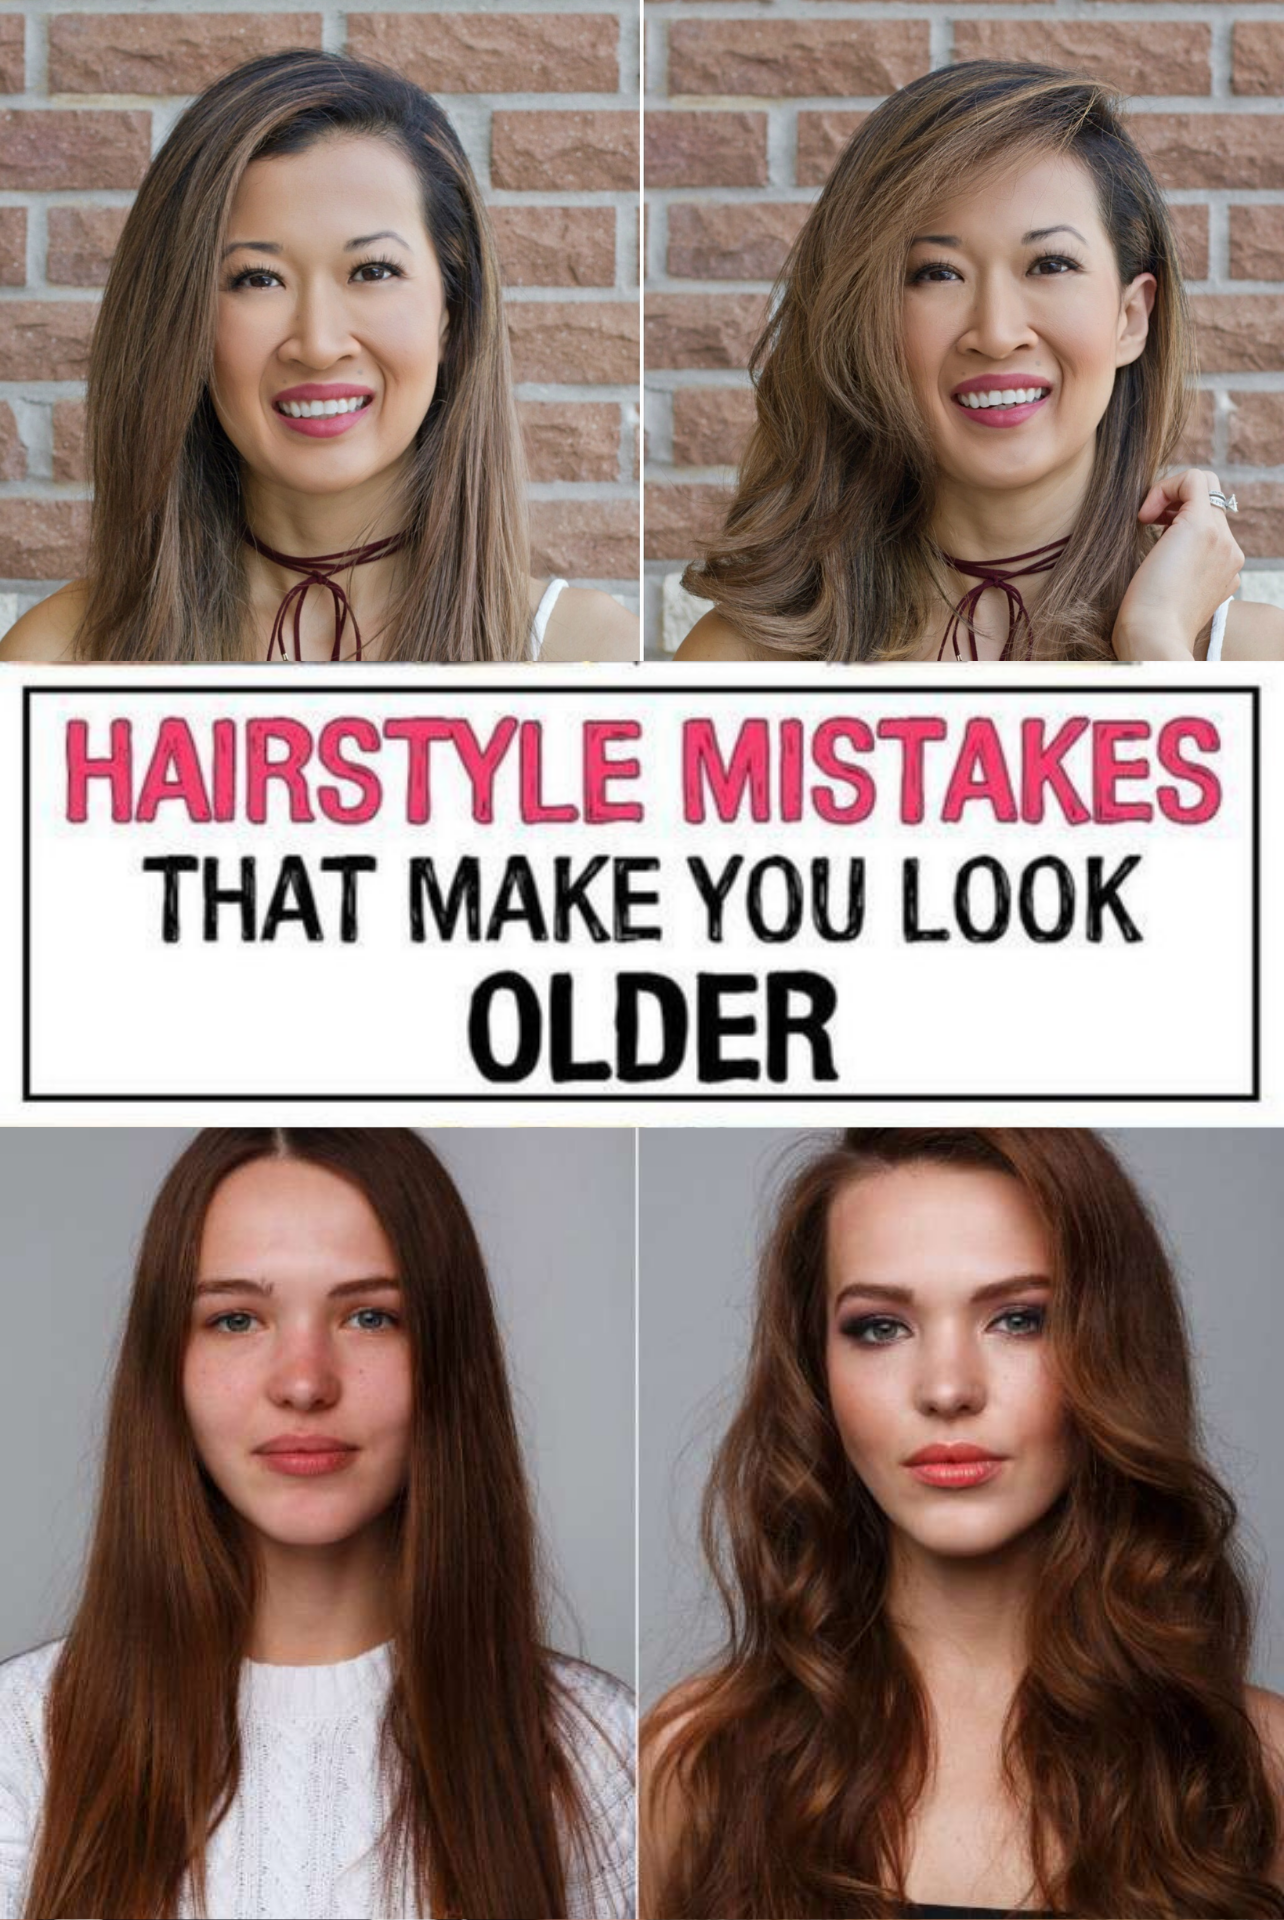 17 Hairstyle Mistakes That Are Aging You In 2020 Hairstyle Hair Mistakes Mom Hairstyles